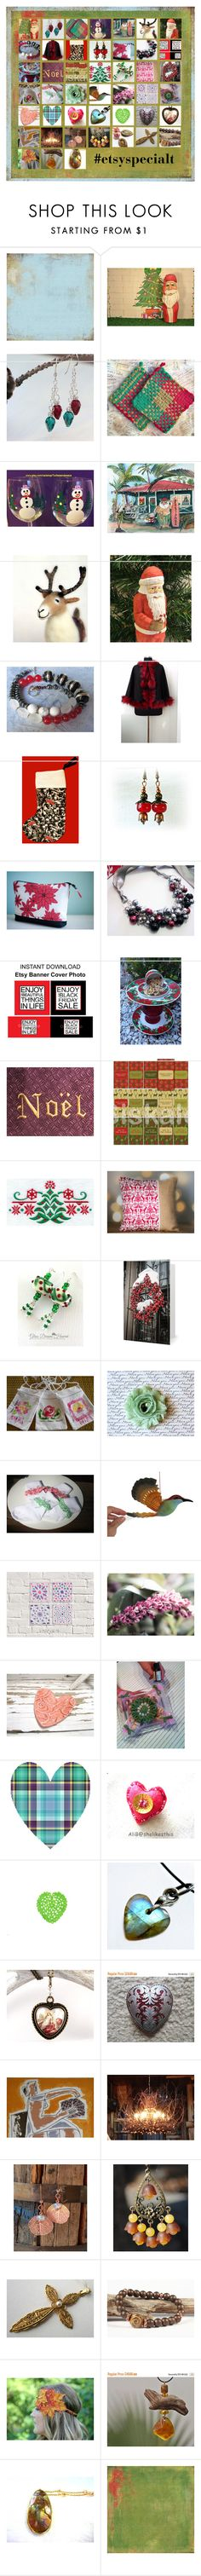 """""""A Special(T) Christmas"""" by rescuedofferings ❤ liked on Polyvore featuring Mele, Hostess, vintage, integrityTT and EtsySpecialT"""